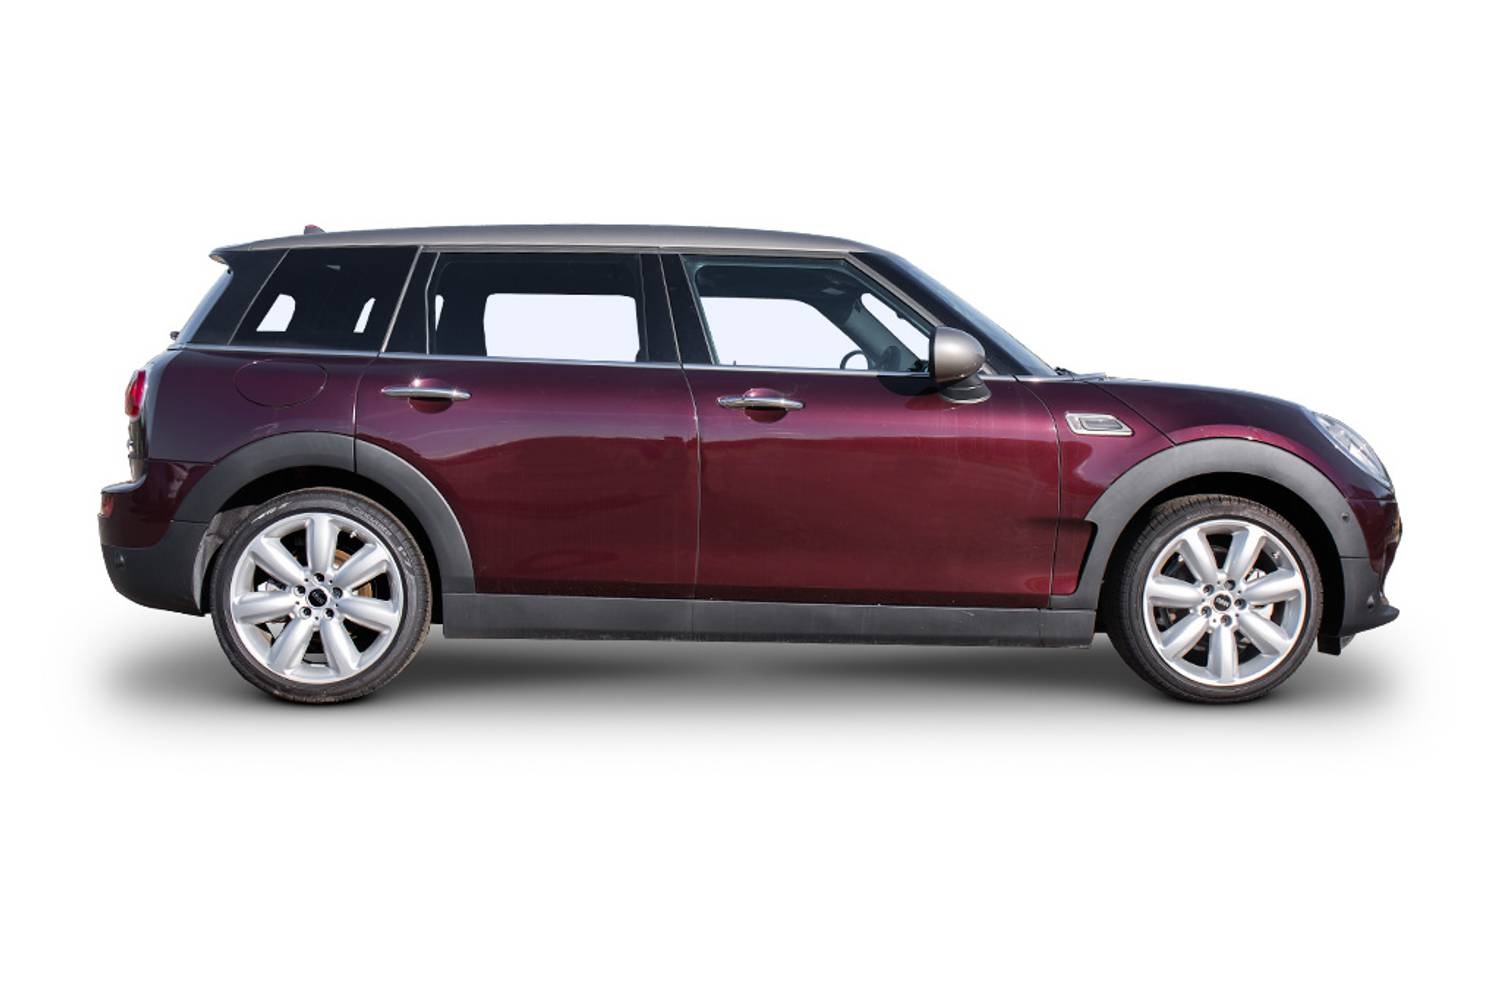 new mini clubman estate 2 0 cooper s 6 door auto 2015 for sale. Black Bedroom Furniture Sets. Home Design Ideas